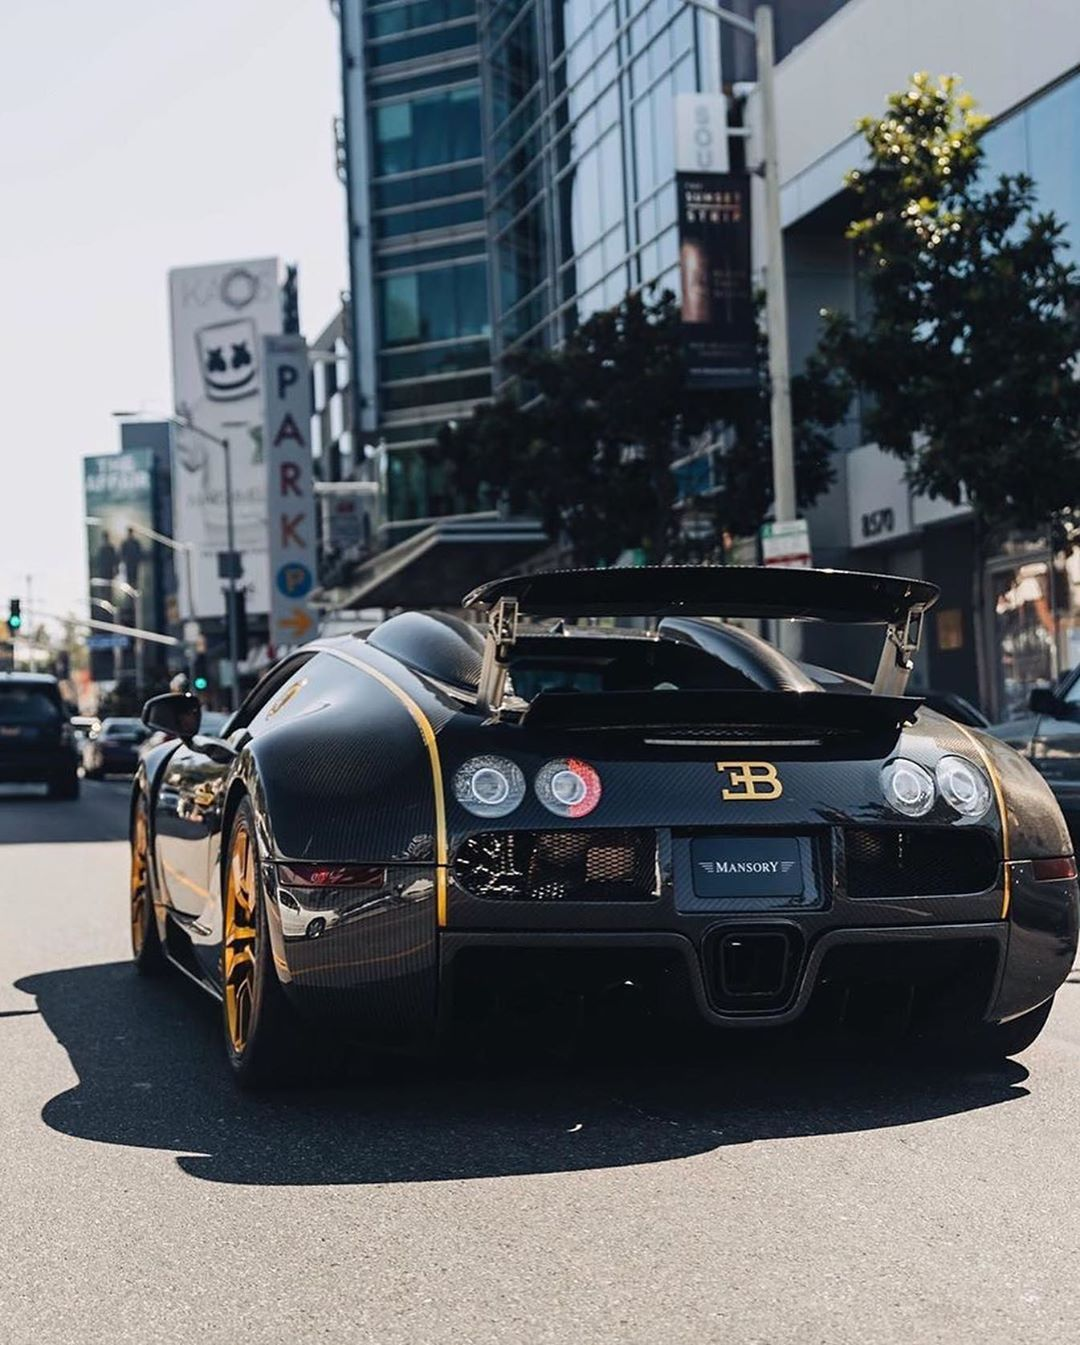 Supercar Heaven Click To Discover More Luxurycar Luxury Beautiful Supercars Dreamcars Sportscar Car Carporn Amazing Cars Celebrity Cars Car